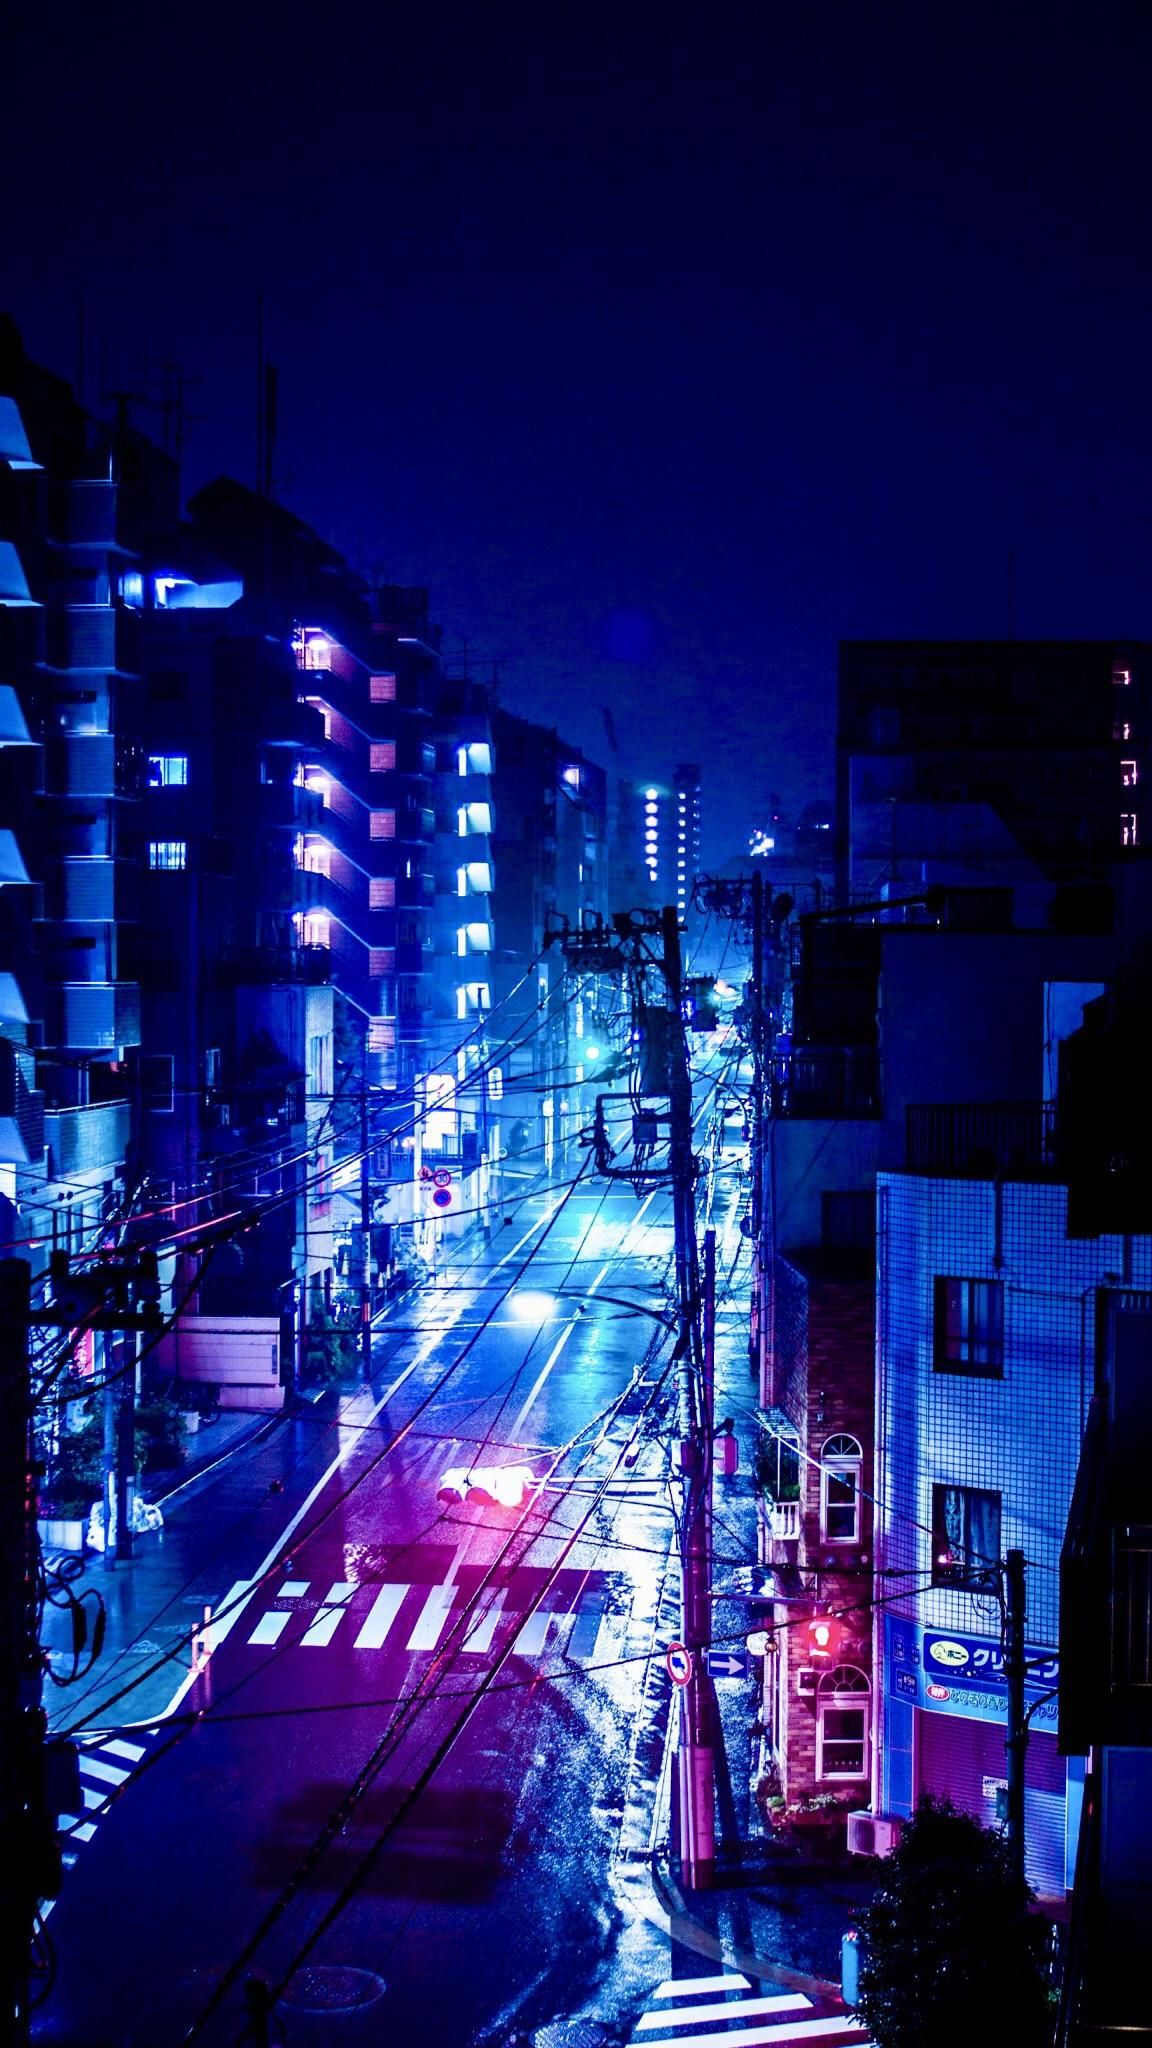 City Lights Download At Http Www Myfavwallpaper Com 2018 07 City Lights Html Iphonewallpaper Phonewallpaper Back City Aesthetic City Wallpaper Anime City